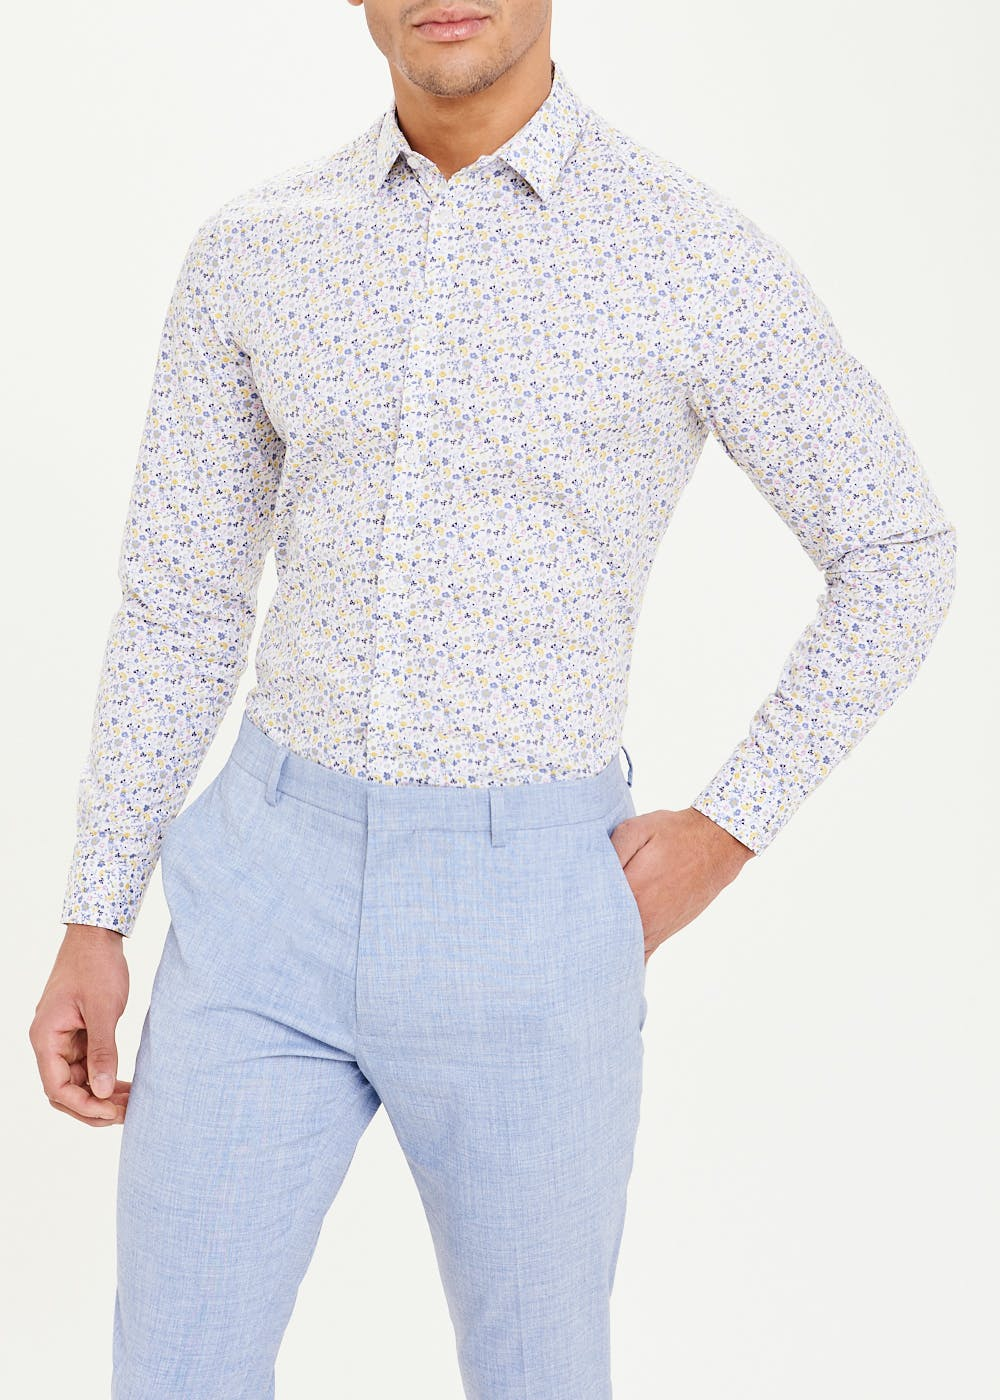 Taylor & Wright Long Sleeve Slim Fit Floral Shirt – Multi